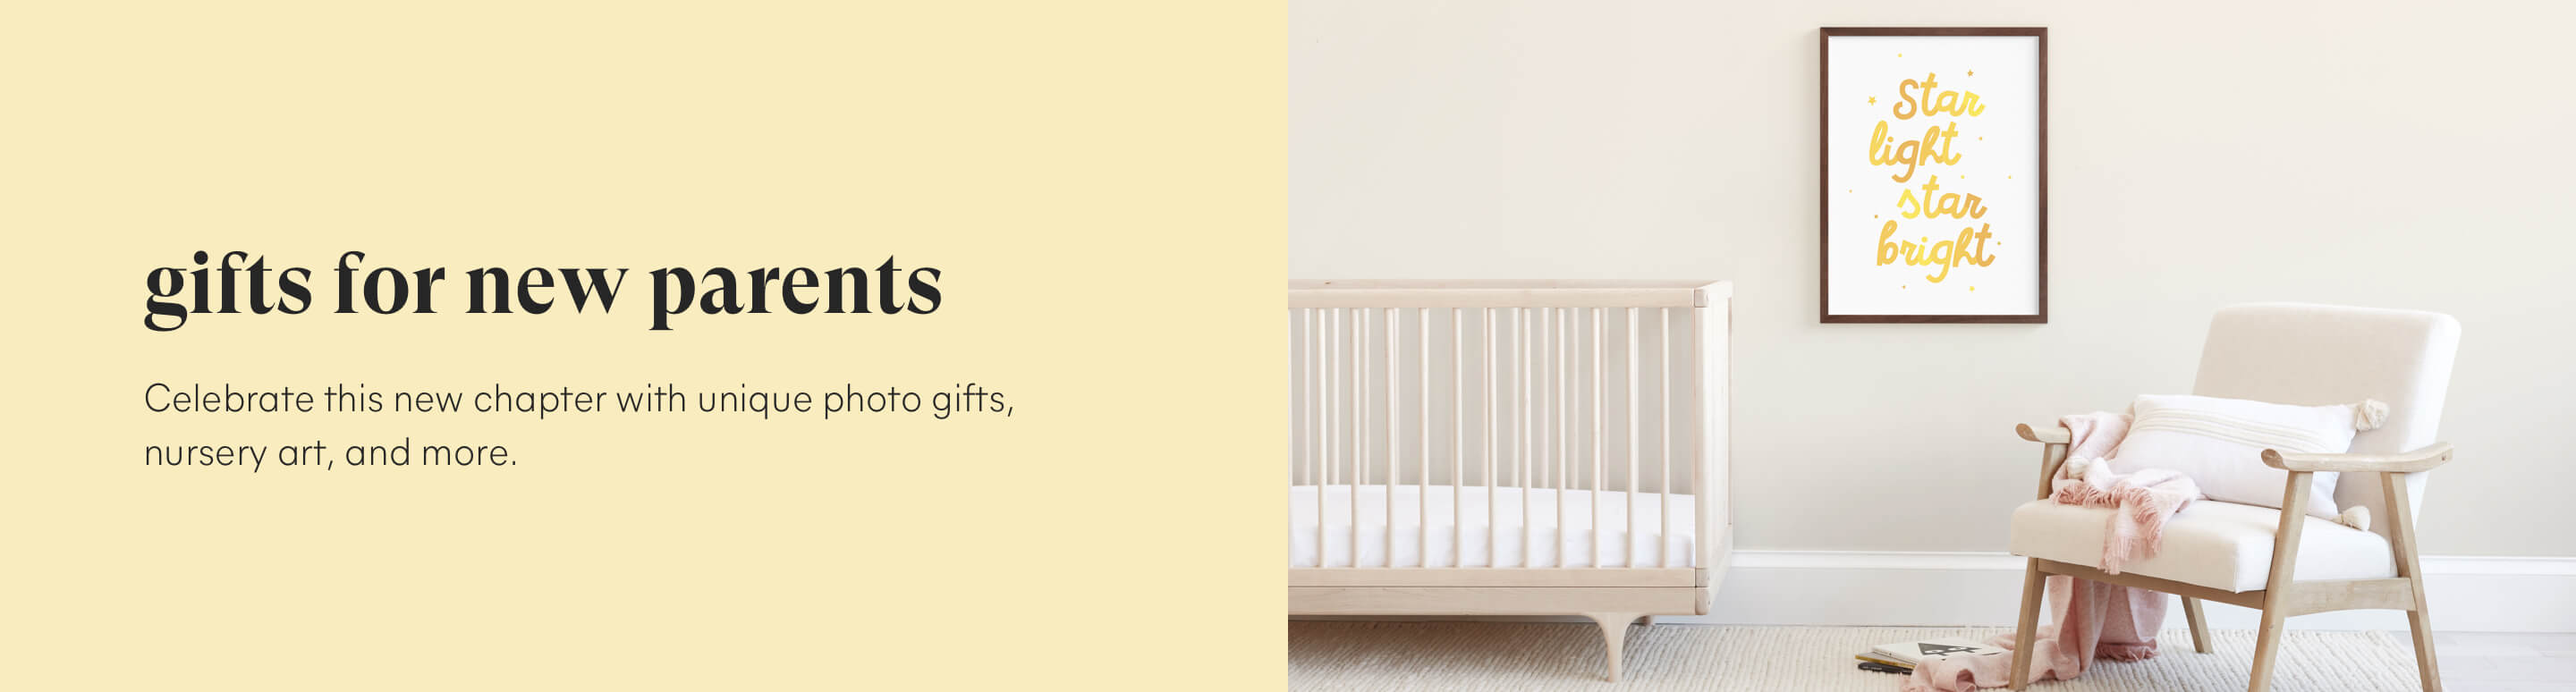 Gifts for the New Parents